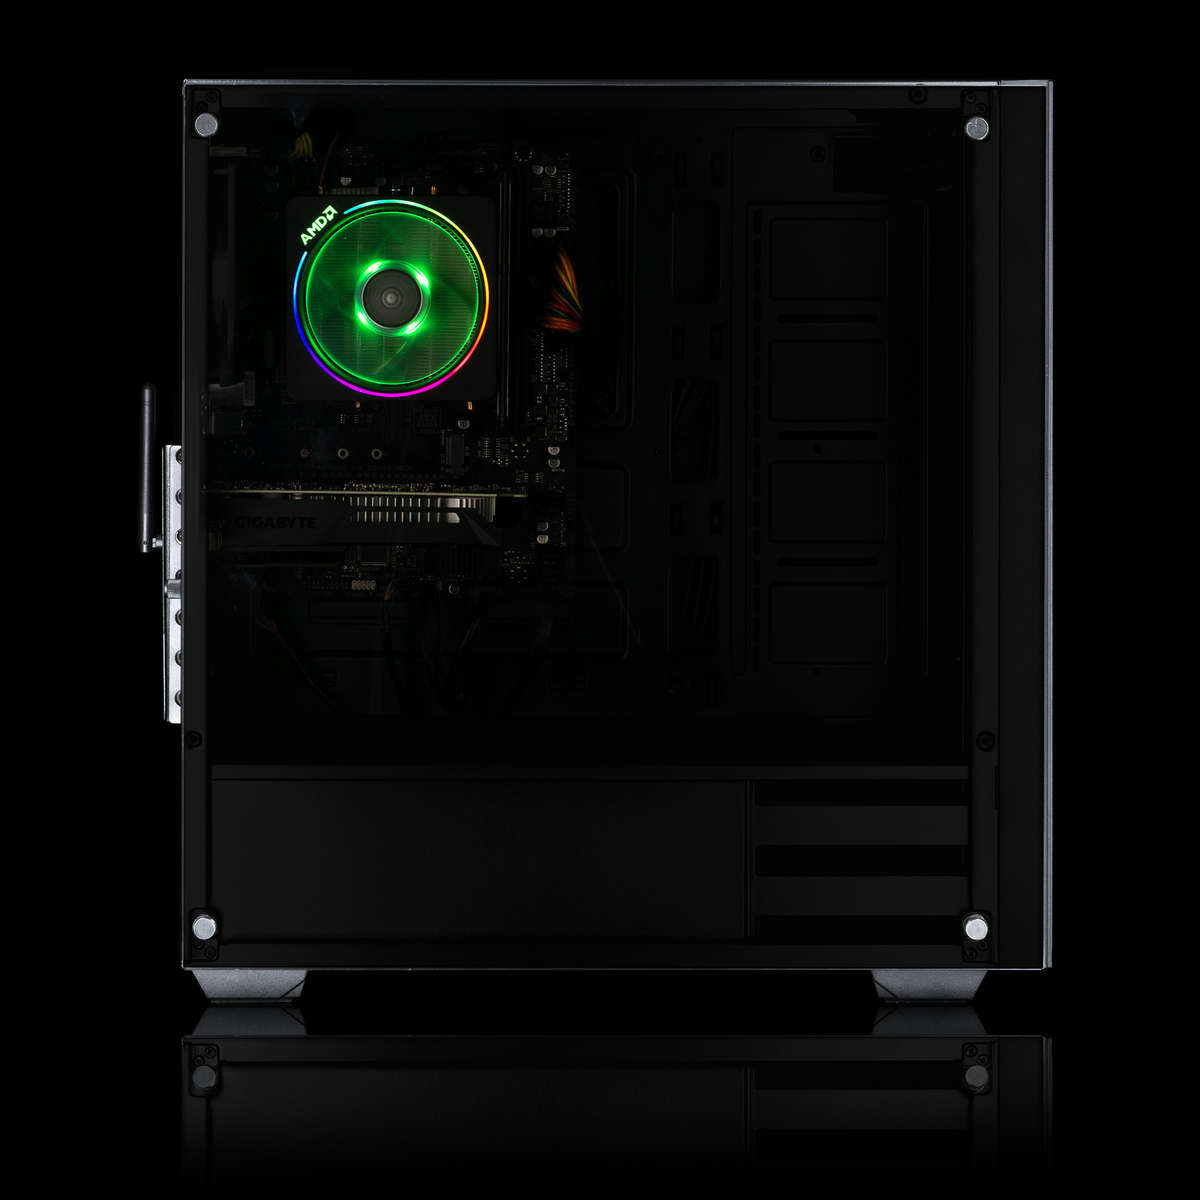 Chillblast Fusion Ryzen 3 GTX 1650 Custom Gaming PC